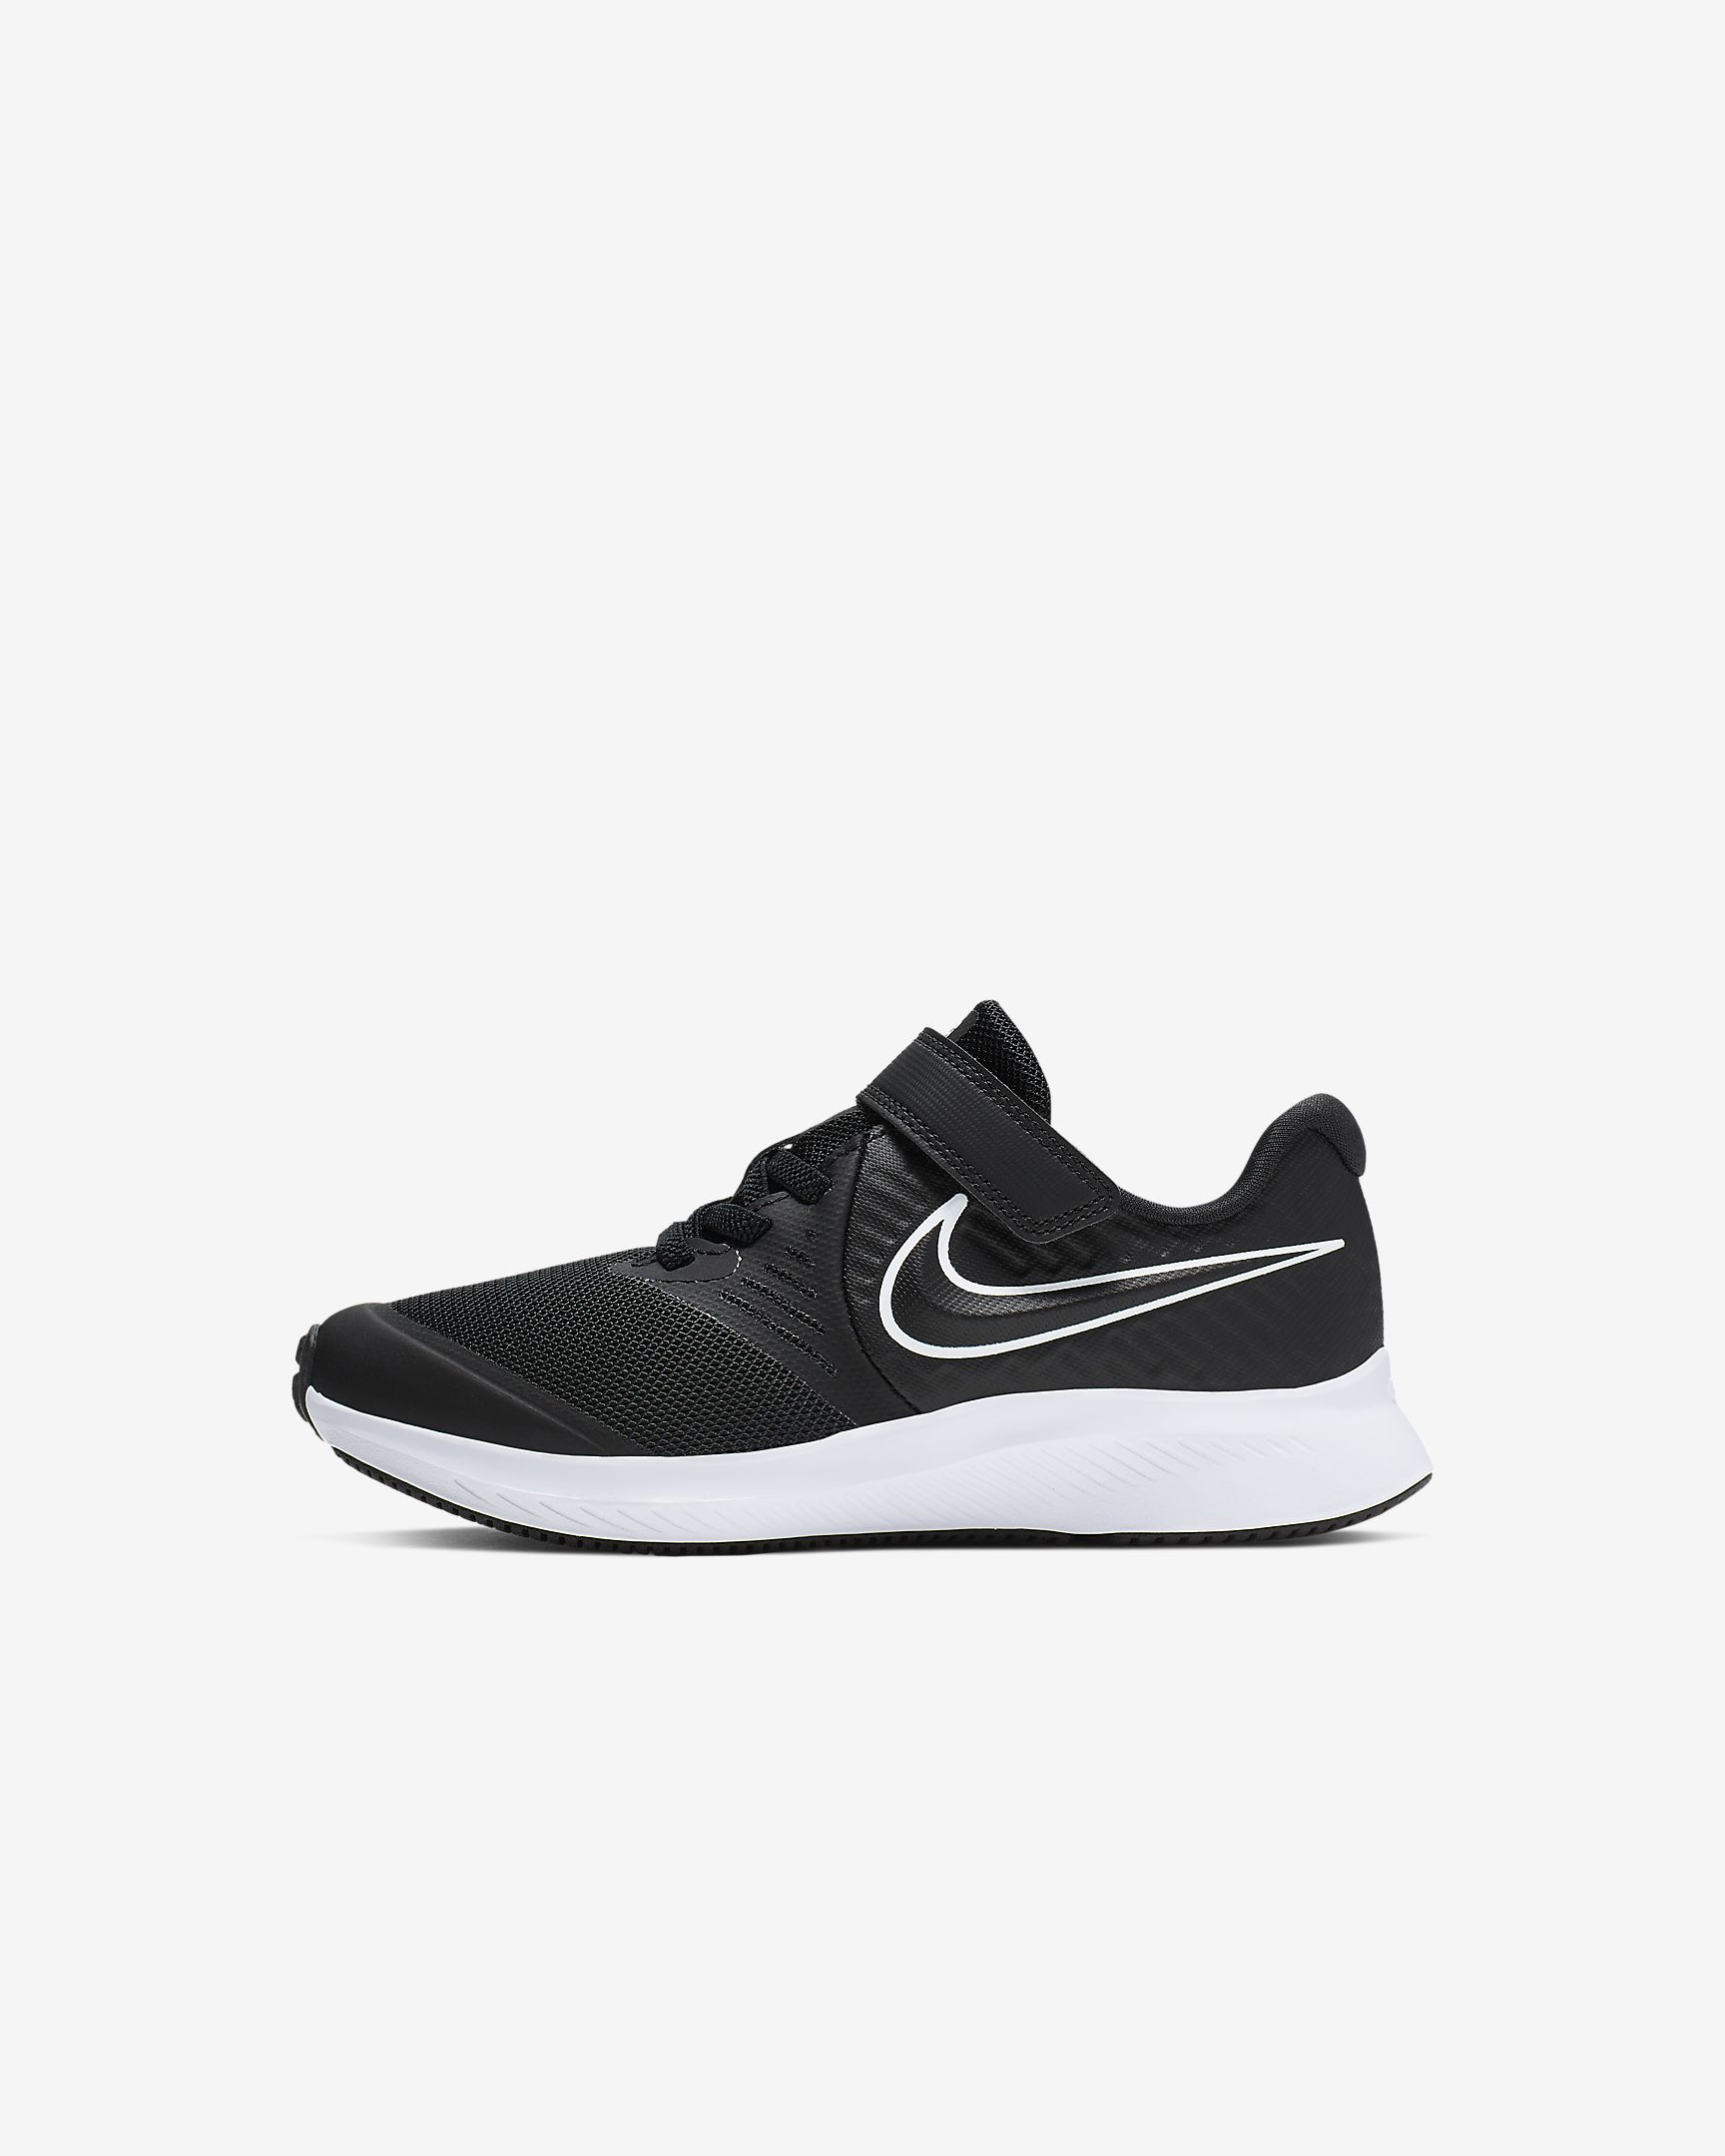 Nike Kids Star Runner 2 Little Kids Shoe - Black/White-Black-Volt SP-Footwear-Kids Nike